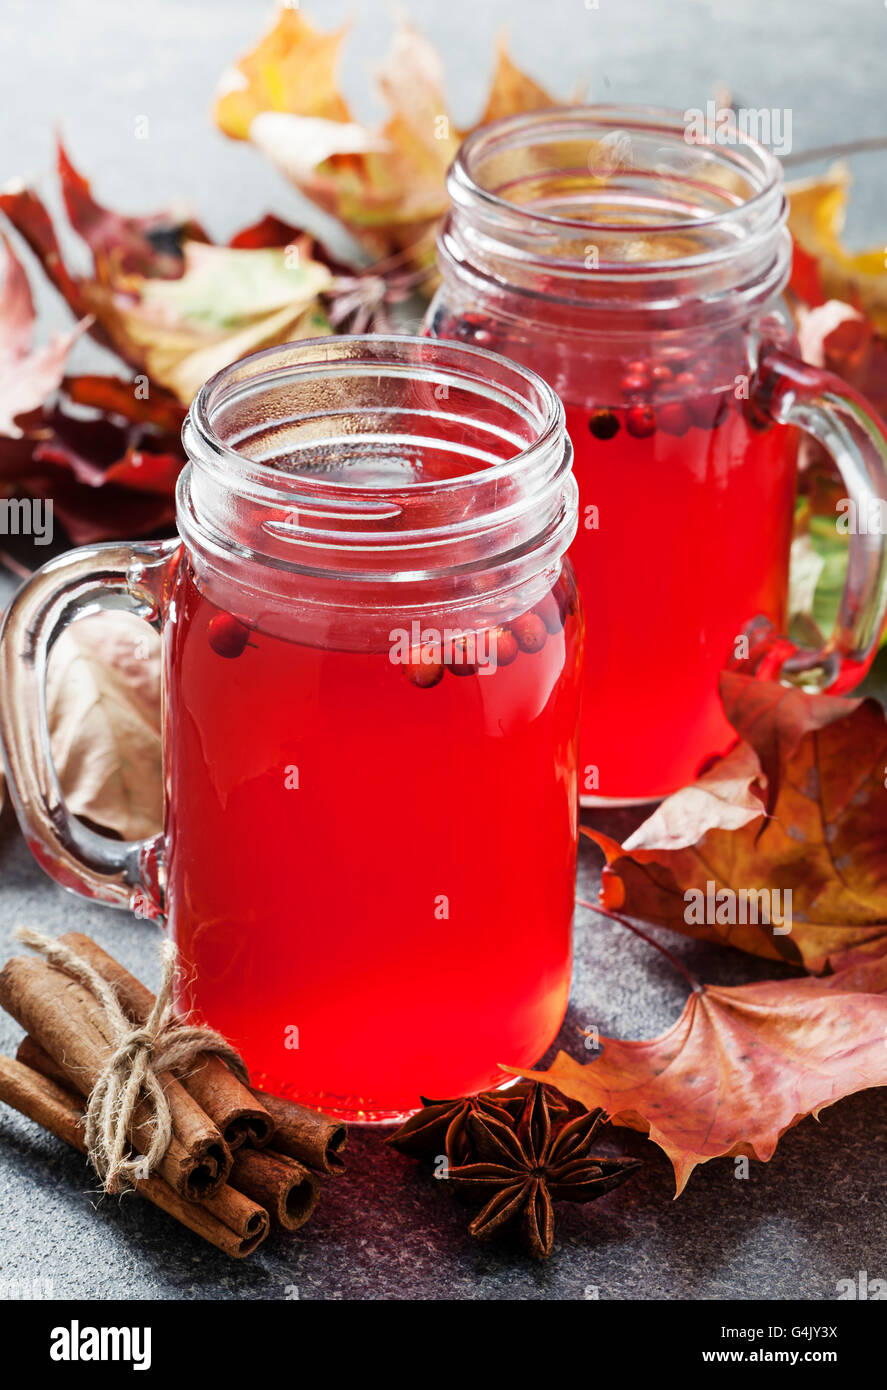 Hot cowberry drink in jars - Stock Image